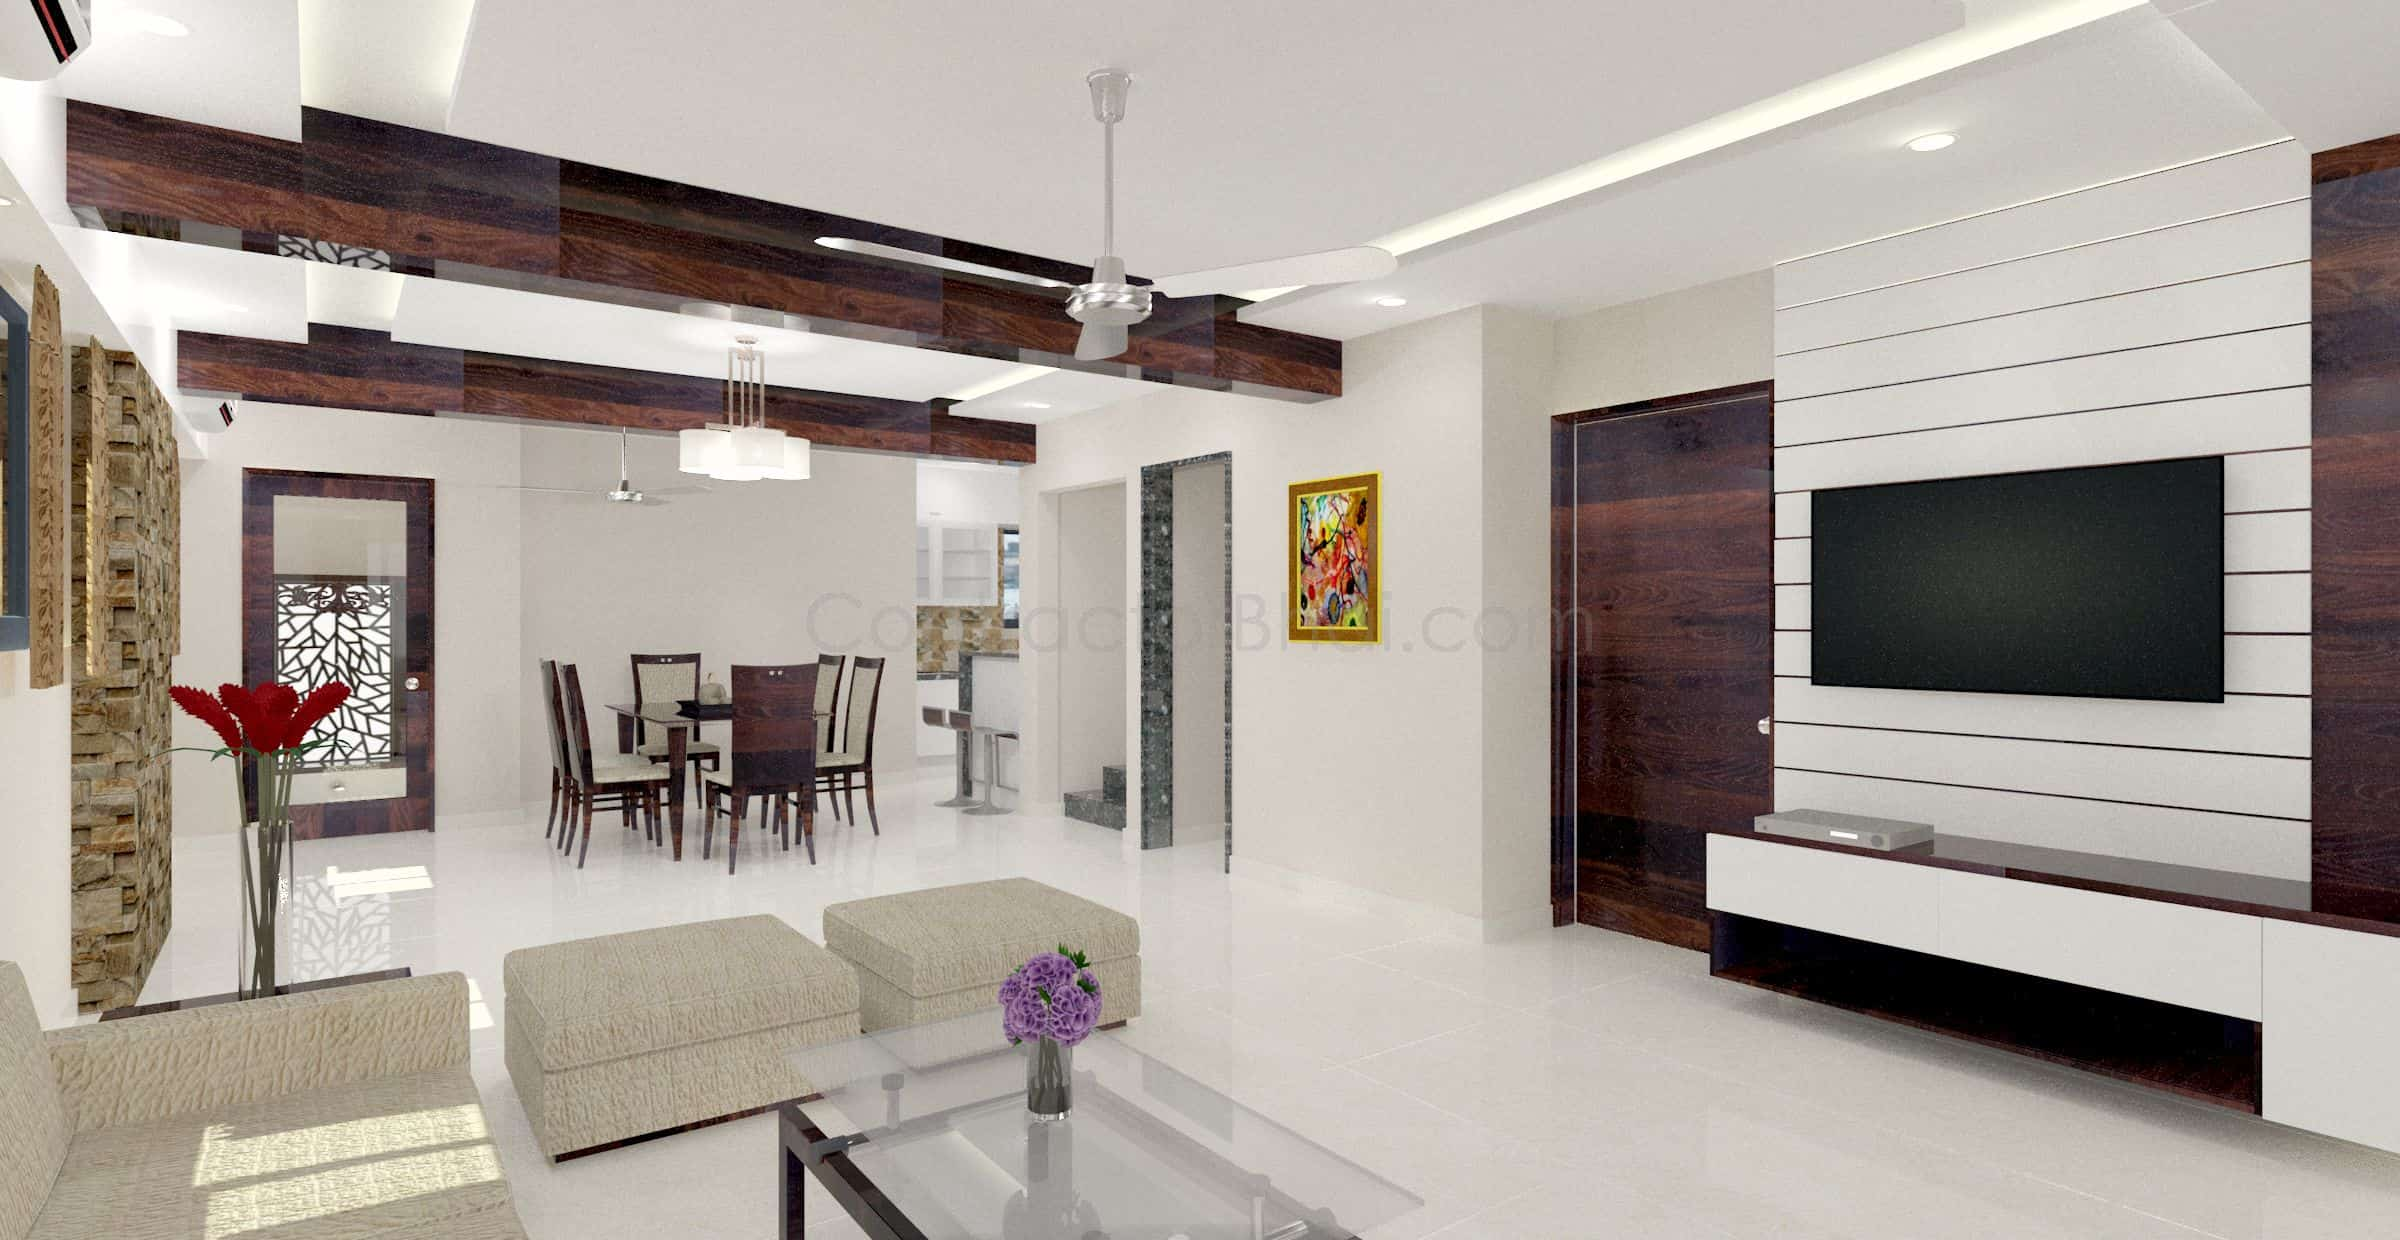 3d interior design service for indian homes contractorbhai for 3d interior design online